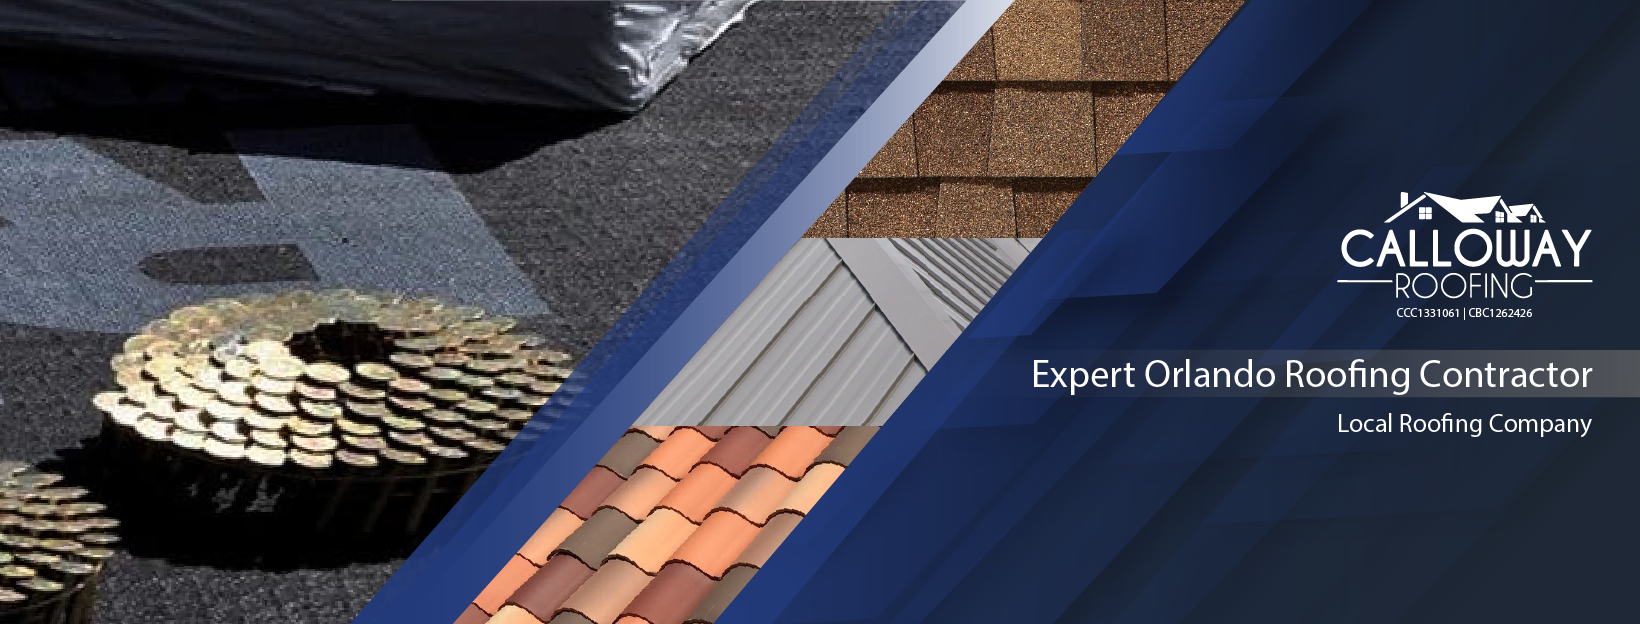 Calloway Roofing Contractor reviews   Roofing at 504 North Hudson Street - Orlando FL